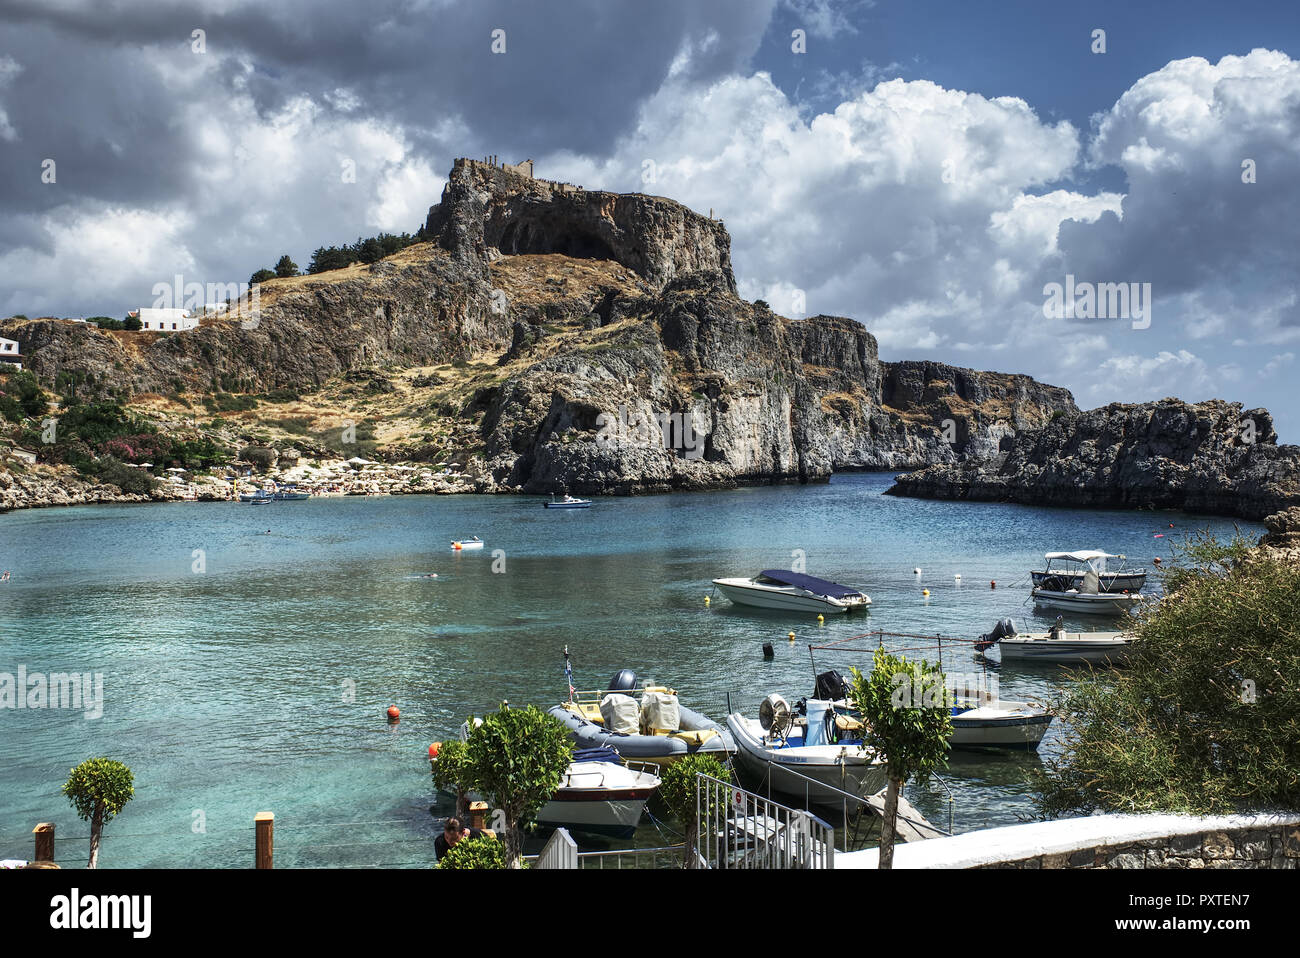 Saint Paul's Bay, Rhodos, Griechenland - Stock Image